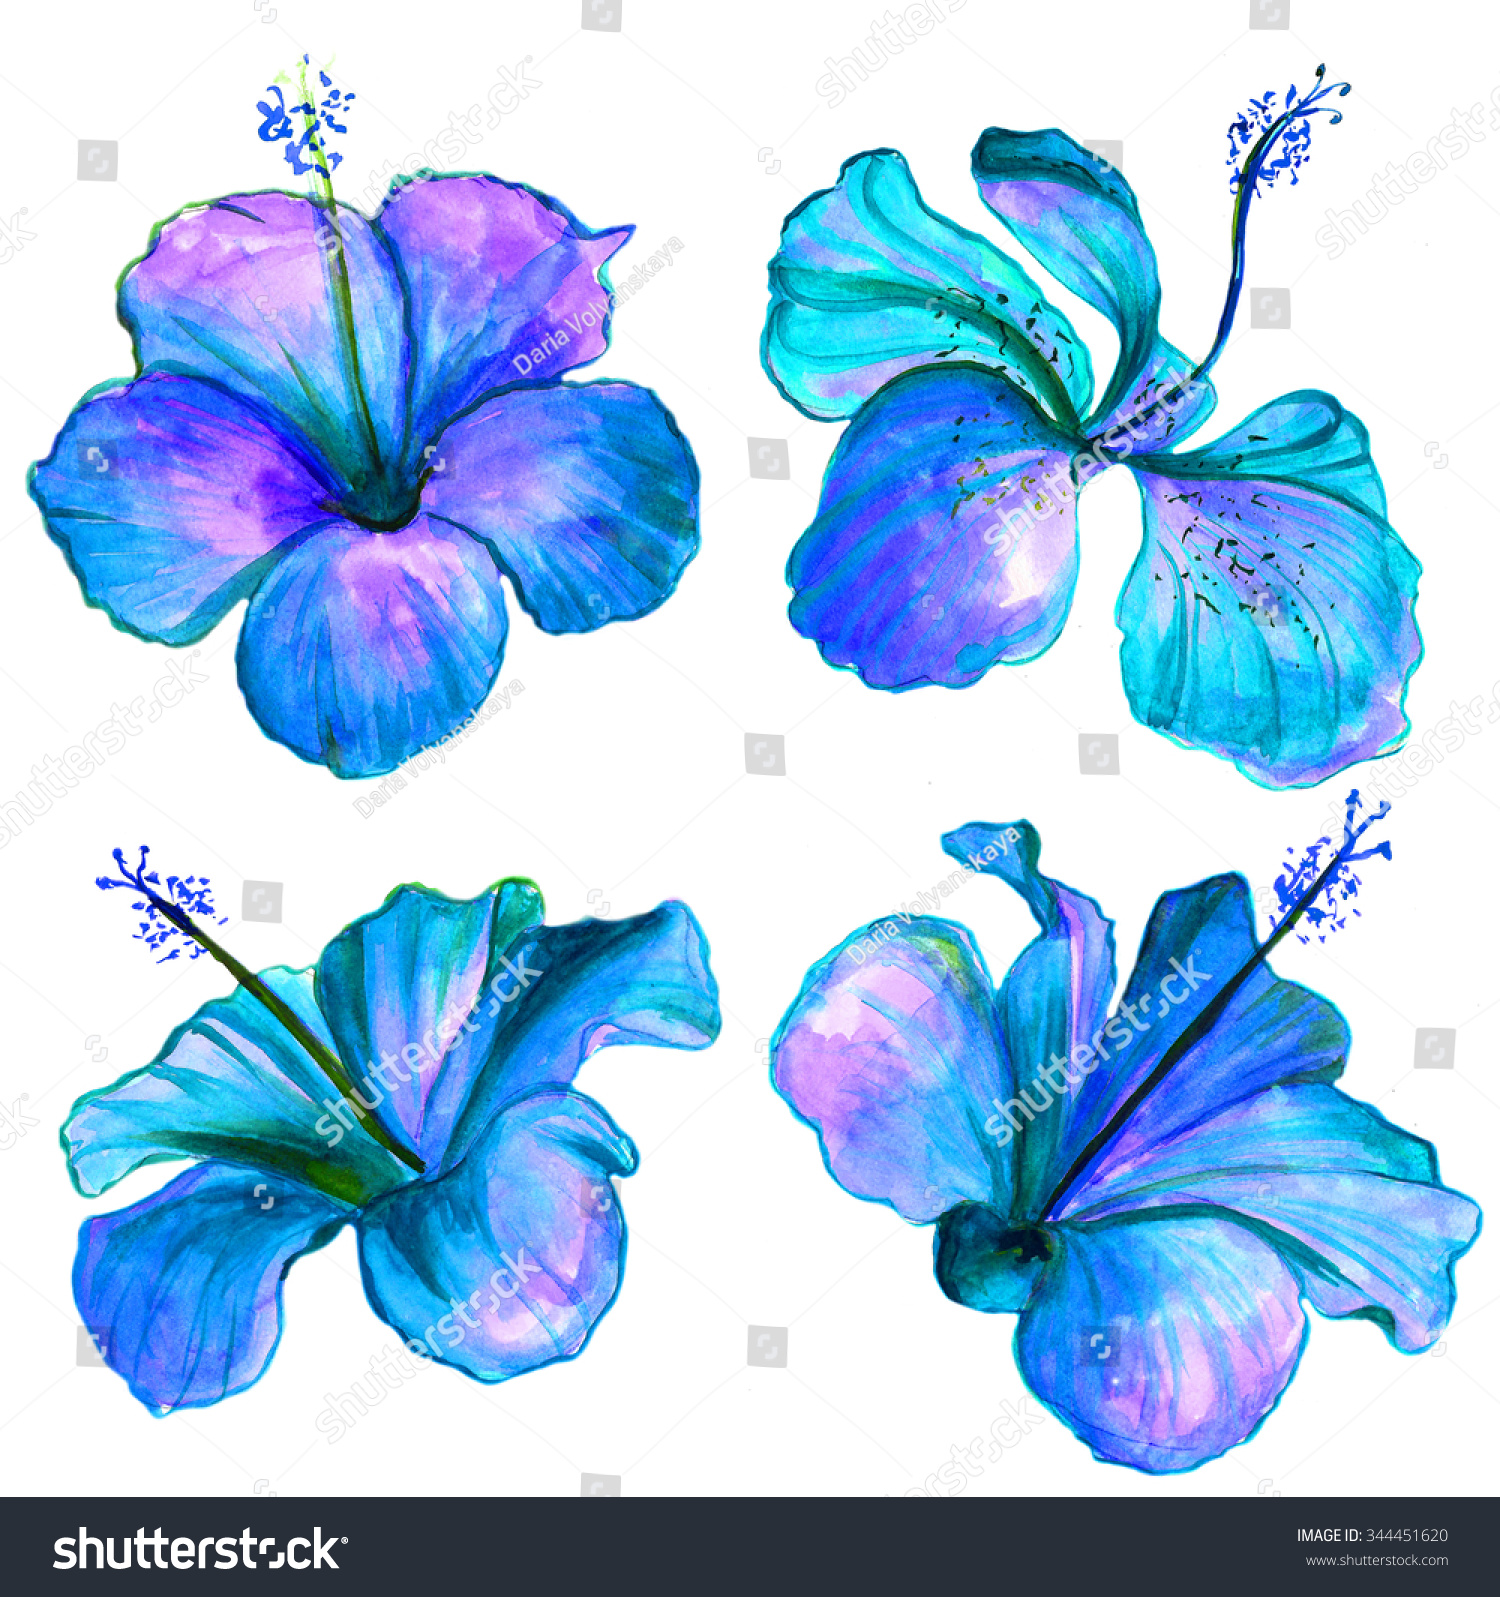 Bright blue watercolor hibiscus flowers collection stock bright blue watercolor hibiscus flowers collection izmirmasajfo